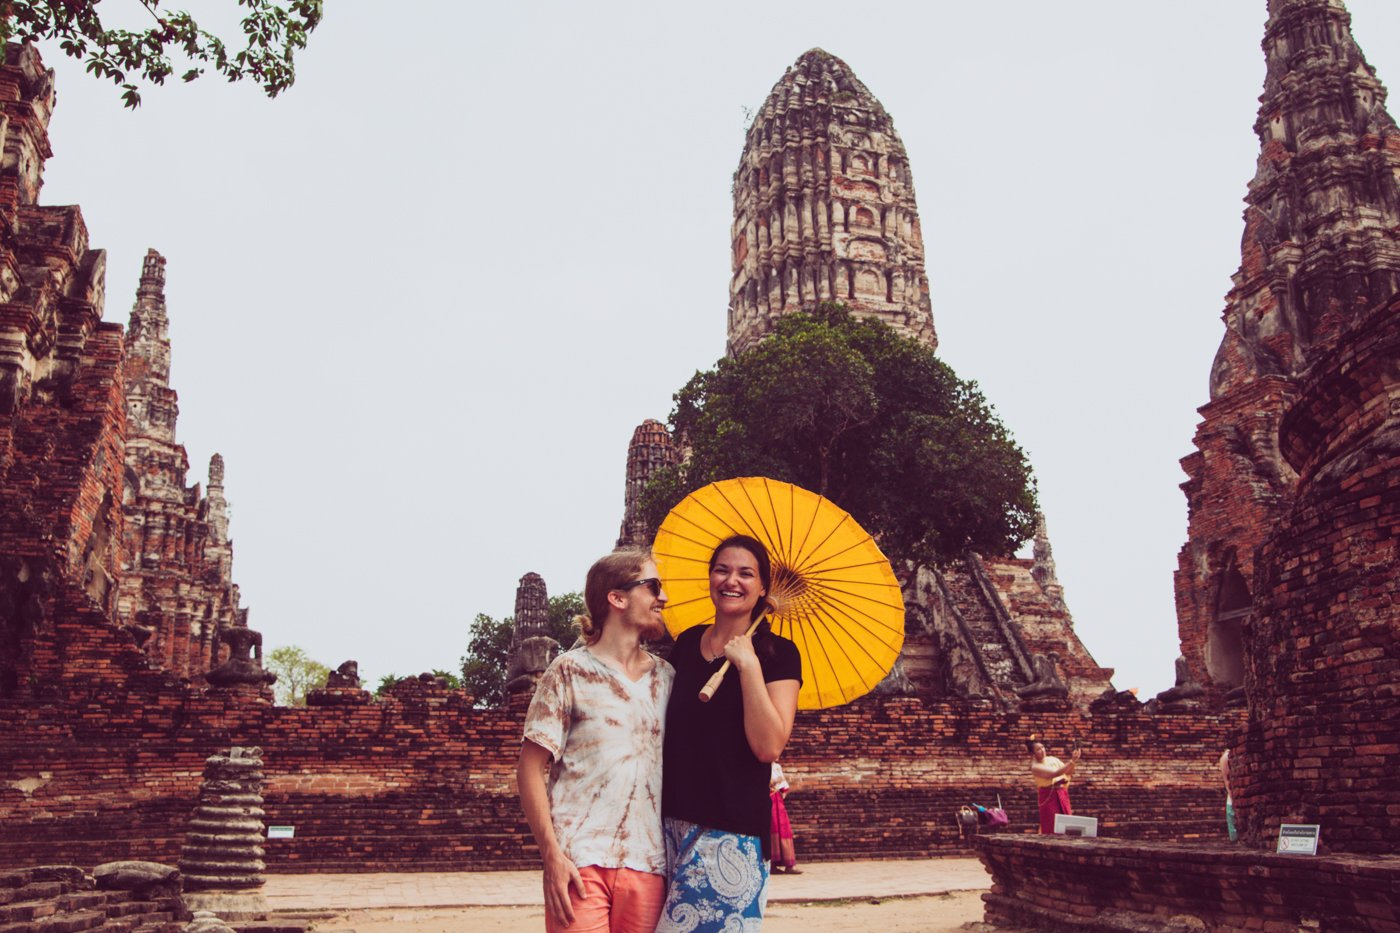 A day trip to Ayutthaya Thailand to get Sak Yant Tattoos and explore temple ruins